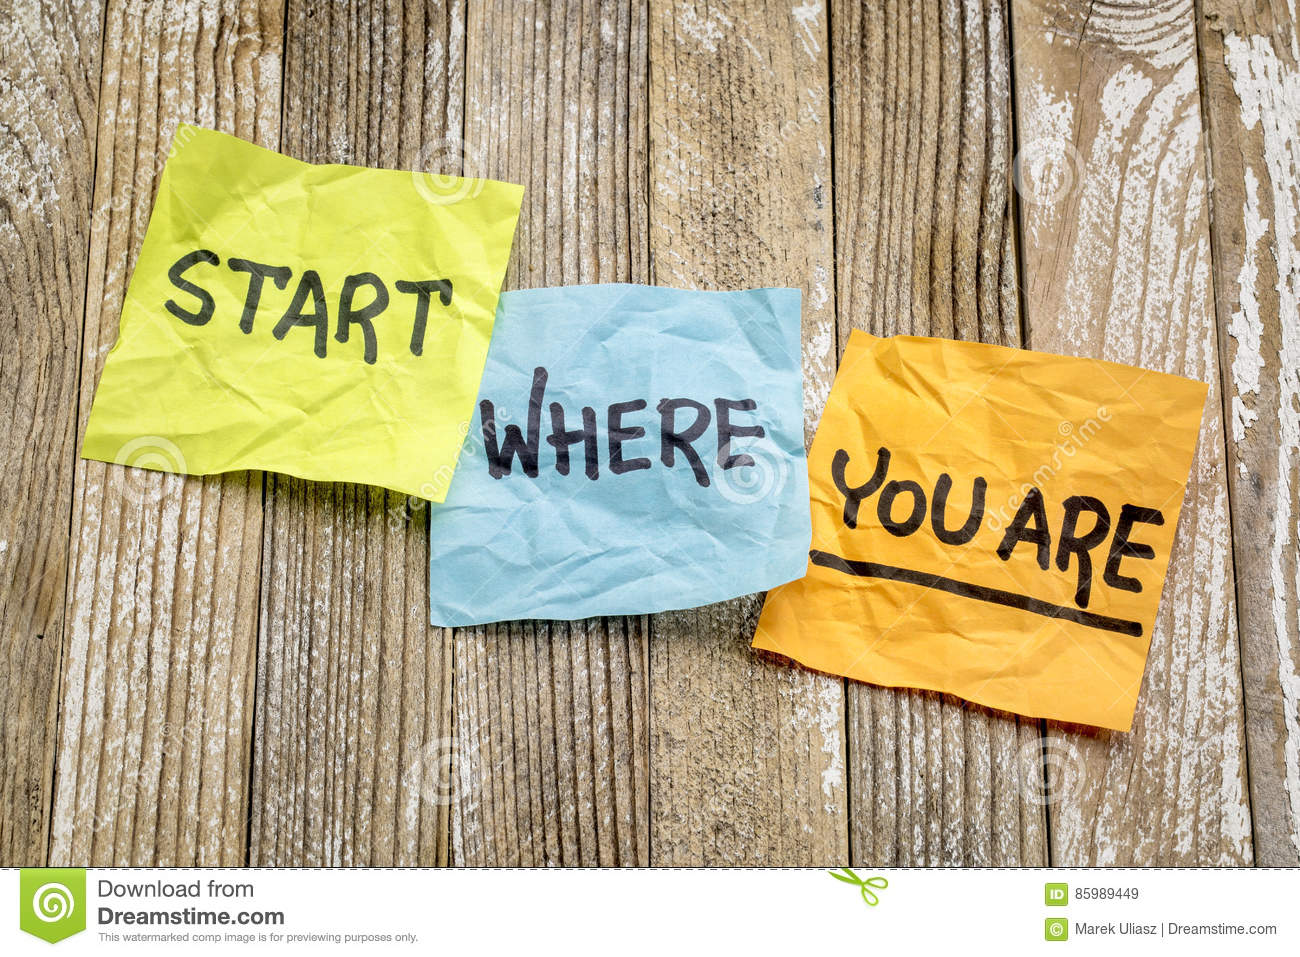 Start where you are advice